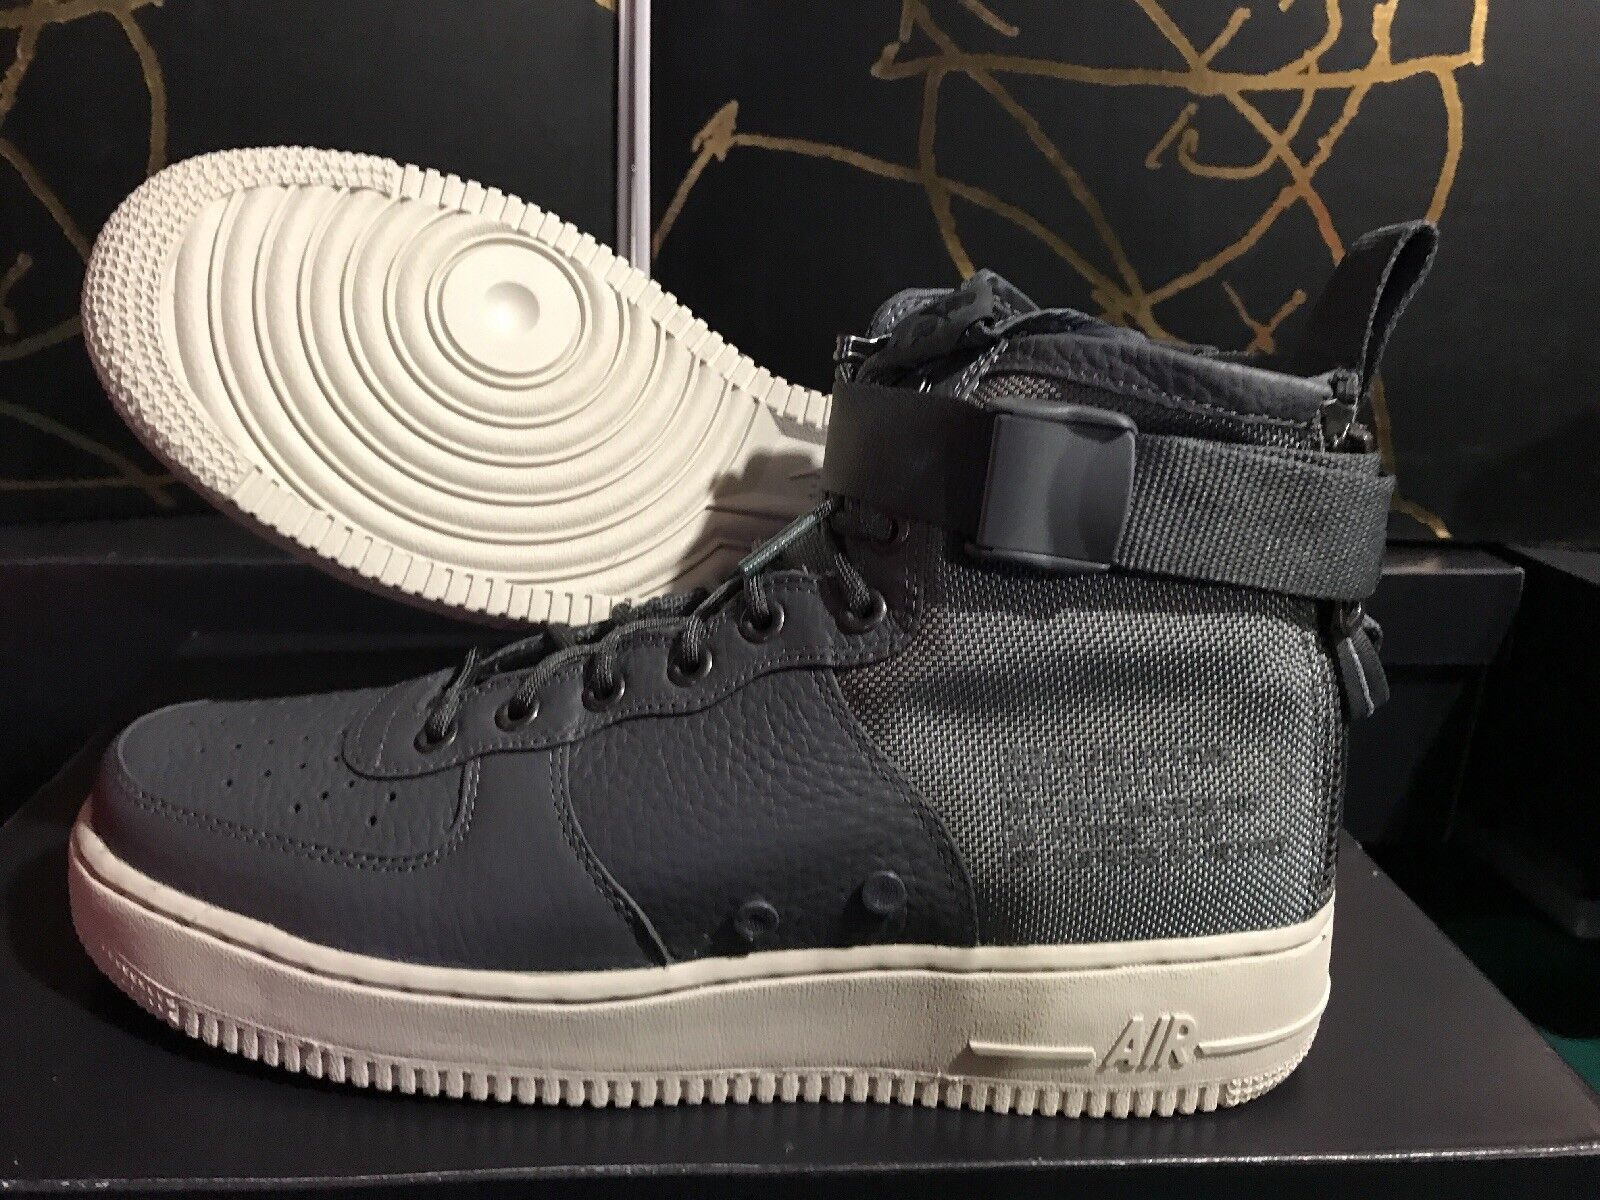 nike SF AF1 Mid Special Forces Air force MID GREY US MENS SHOE SIZES 917753-004 Comfortable and good-looking